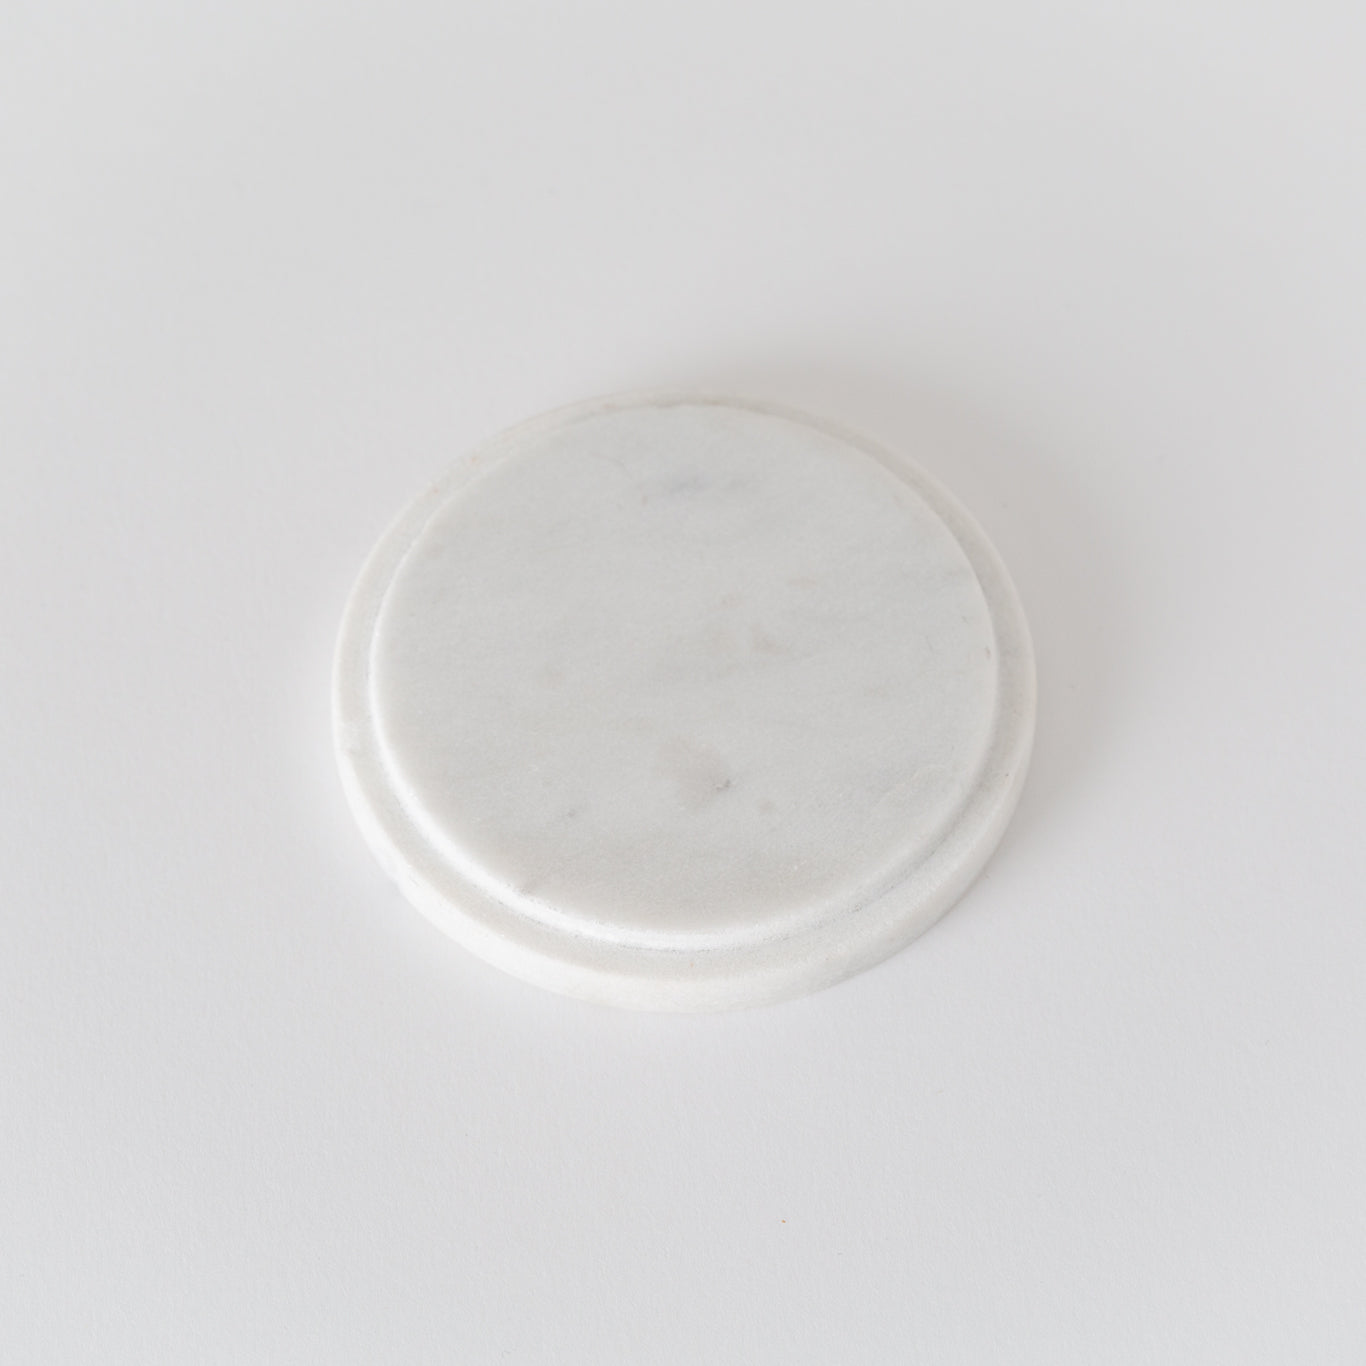 Pure marble lid/ coaster to fit 220g natural wax candle. Under side